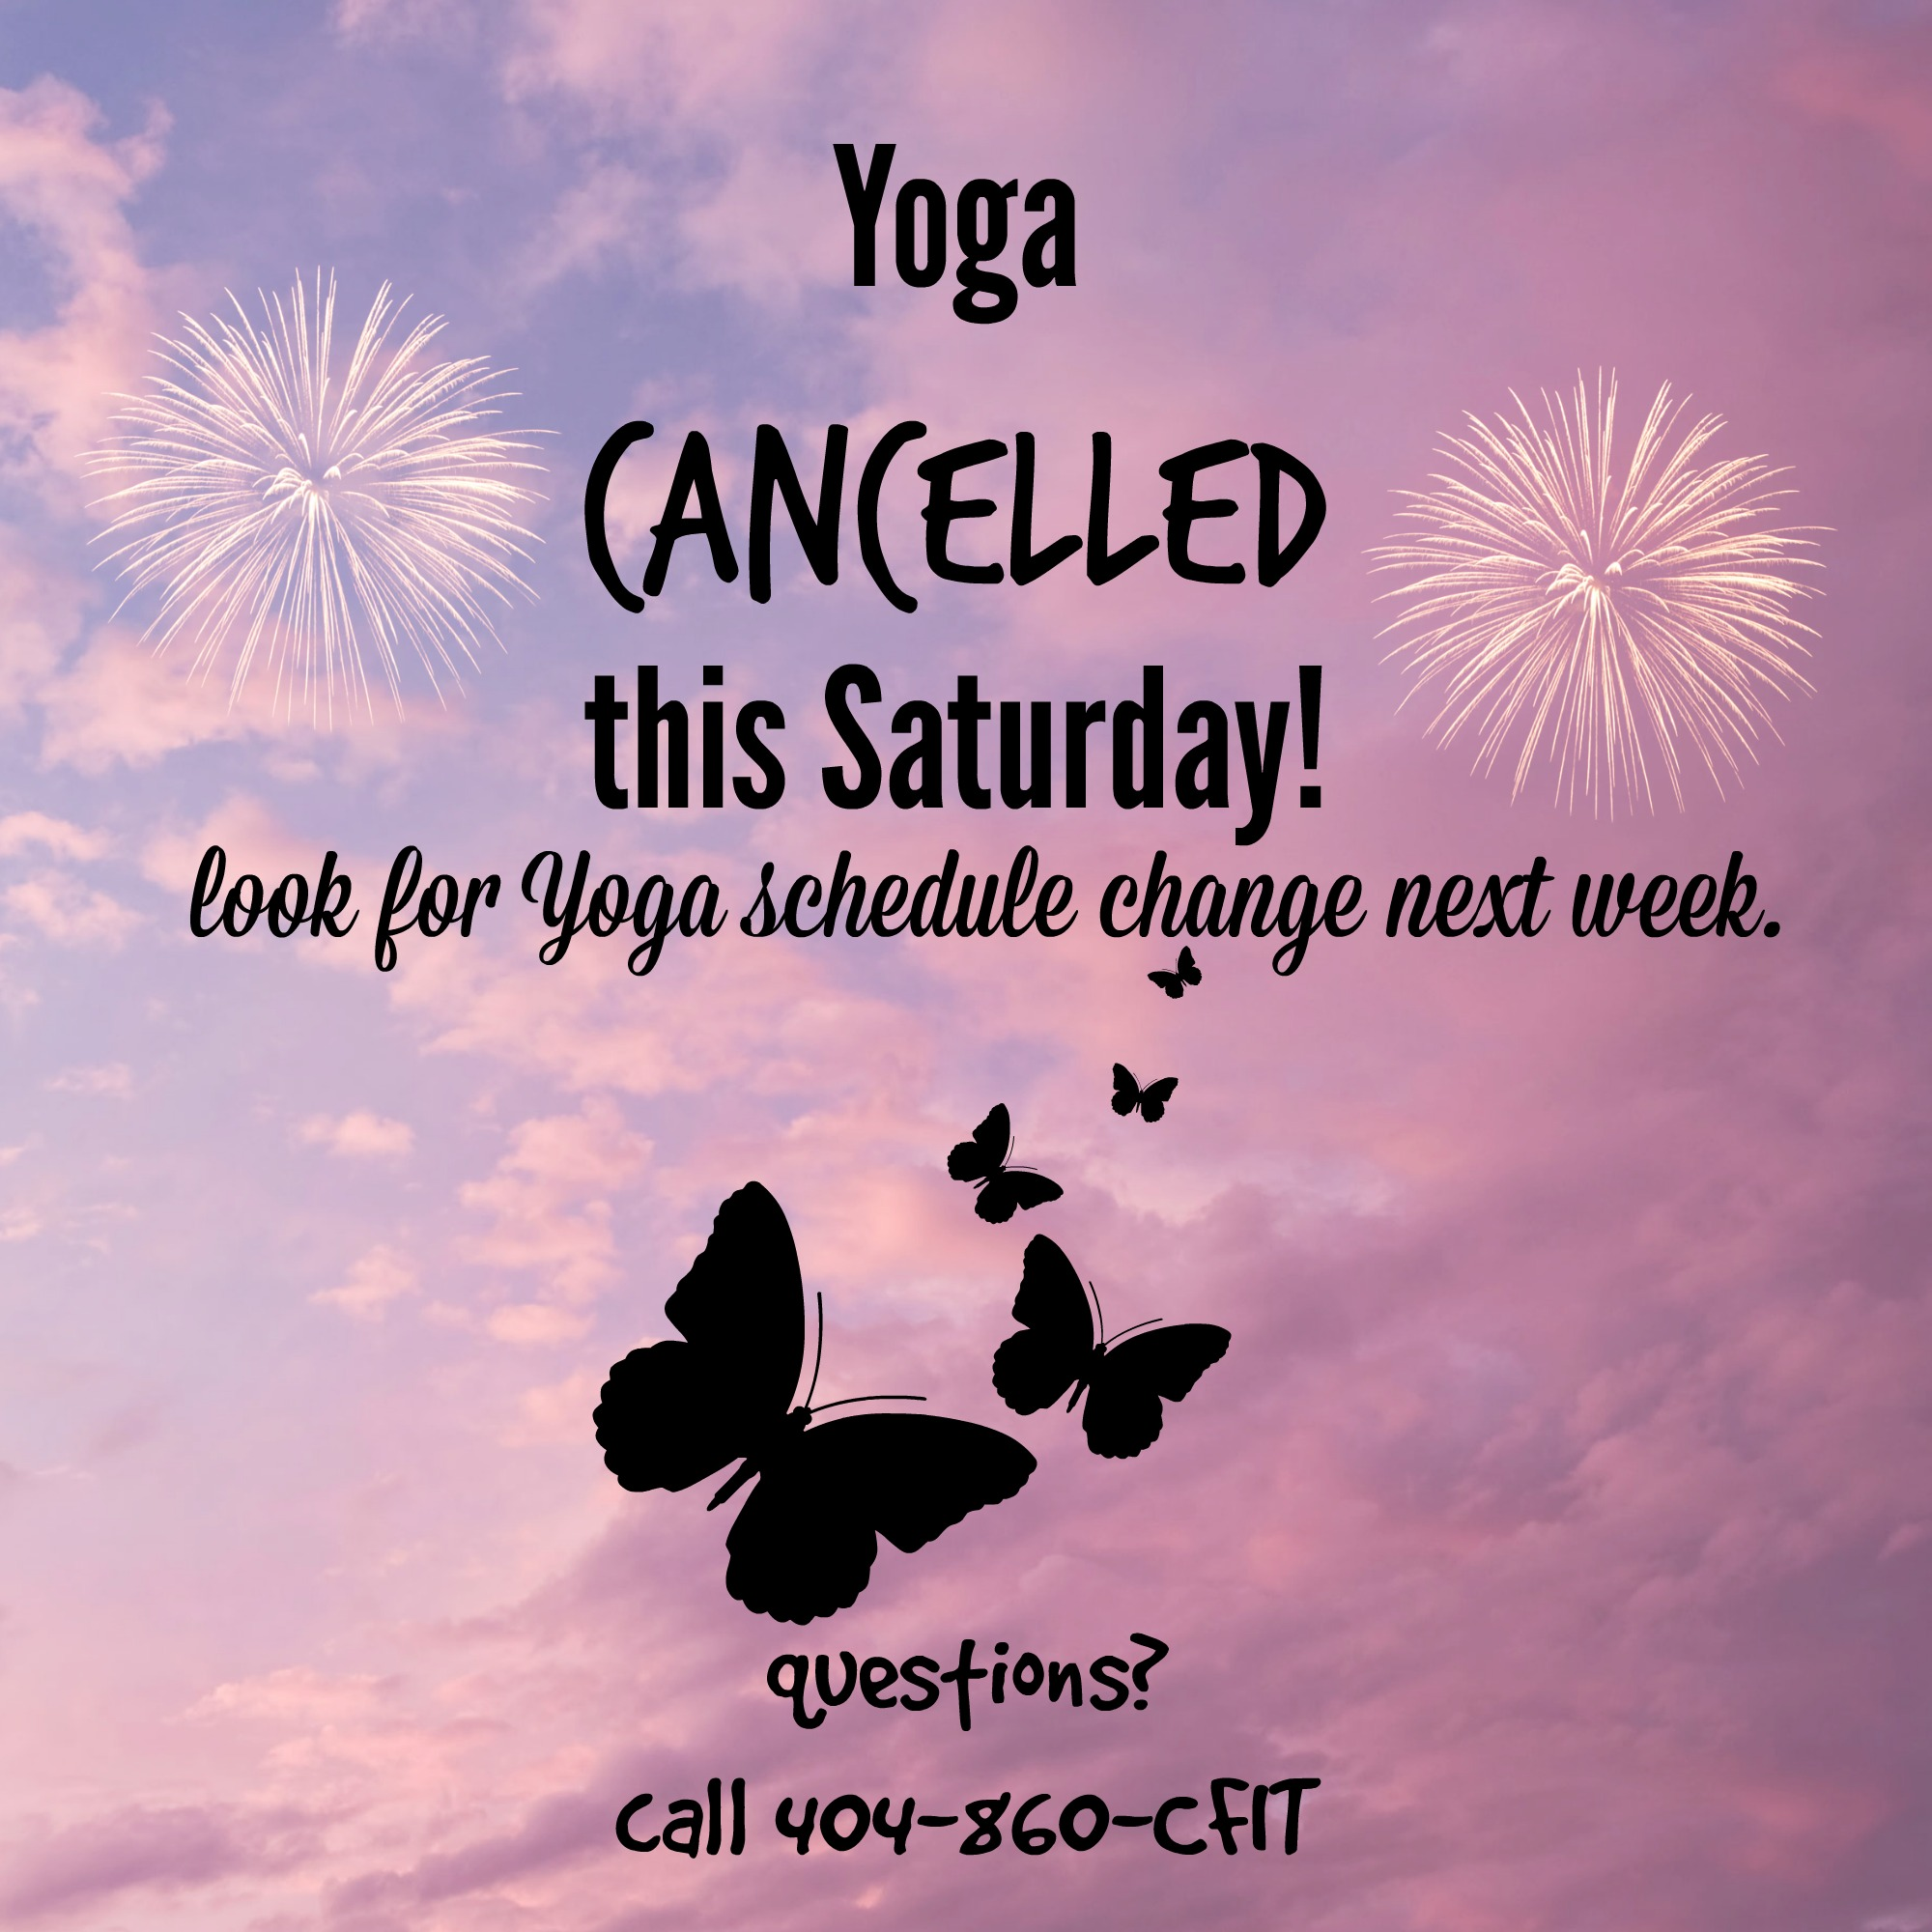 Yoga Cancelled This Saturday Crossfit